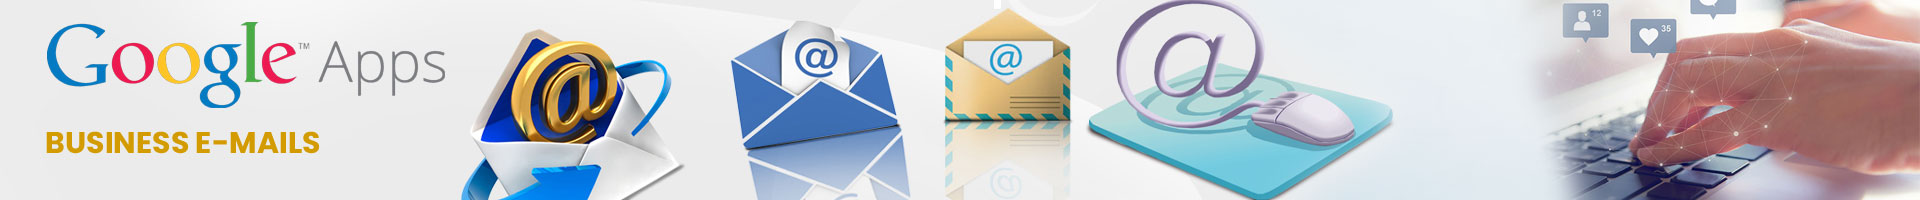 Google Business Email Services Company - Modi Infotech Services